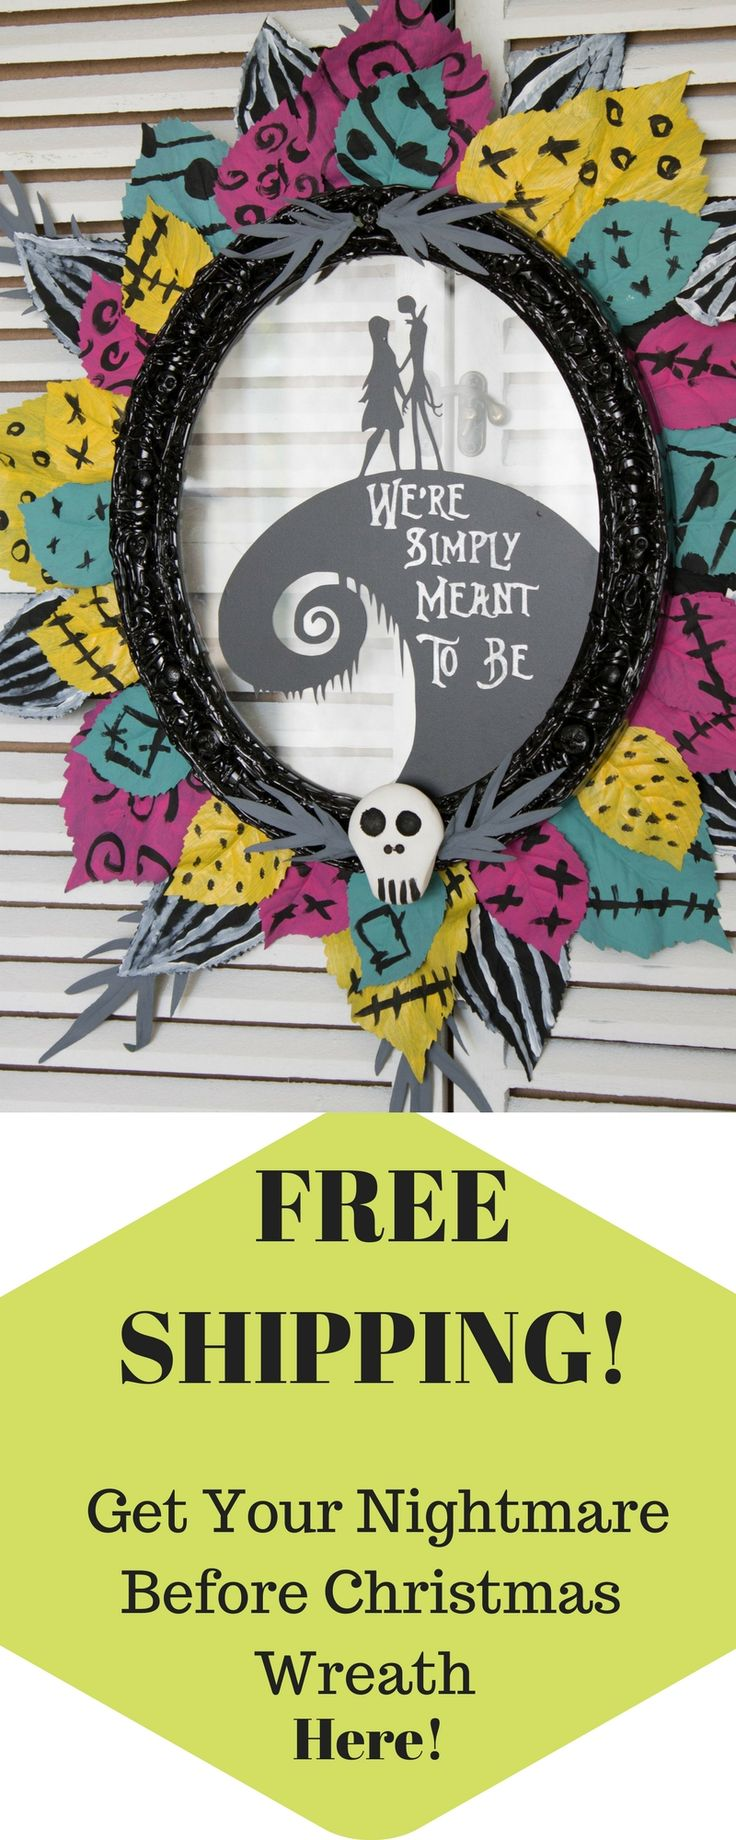 FREE SHIPPING/ Halloween/ Front Door/ Christmas Wreath/ Halloween Wreath/ Nightmare Before Christmas/ Jack and Sally/ Jack Skellington/ Welcome your guests this Halloween with this Nightmare Before Christmas 24 x 22-inch wreath! This Wreath with its oval frame, bright colored hand painted leaves and cute silhouette of Jack and Sally makes it great for your front door this fall season.  #freeshipping #shoppingonline #nightmarebeforechristmas  #frontdoorwreath #halloweenwreath #etsy  #wreaths